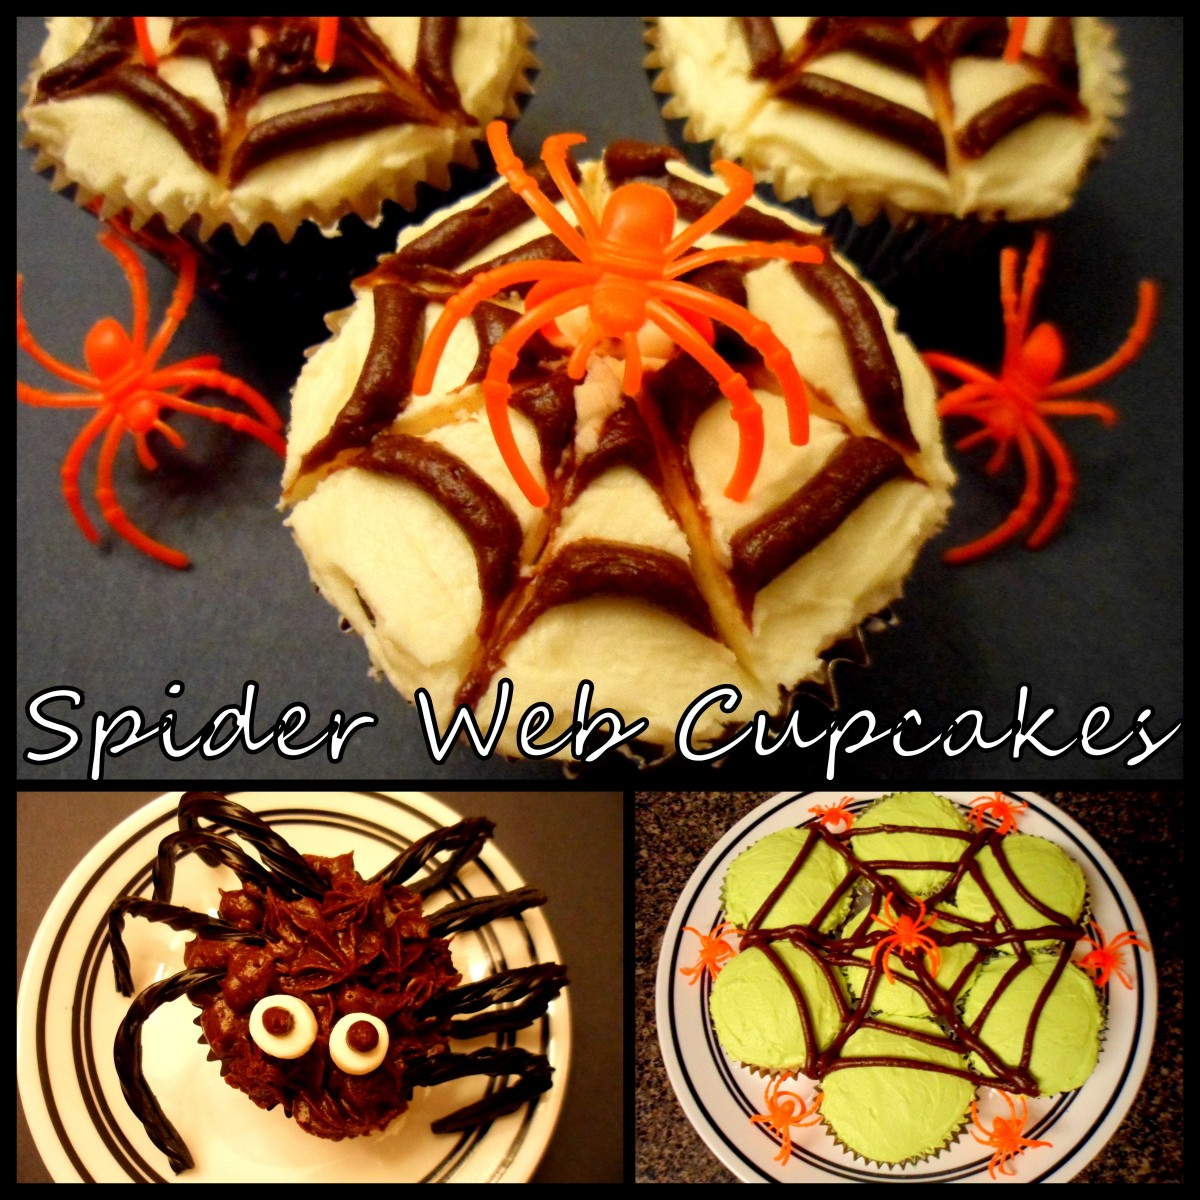 How to Make Spider Web Cupcakes: 3 Different Designs